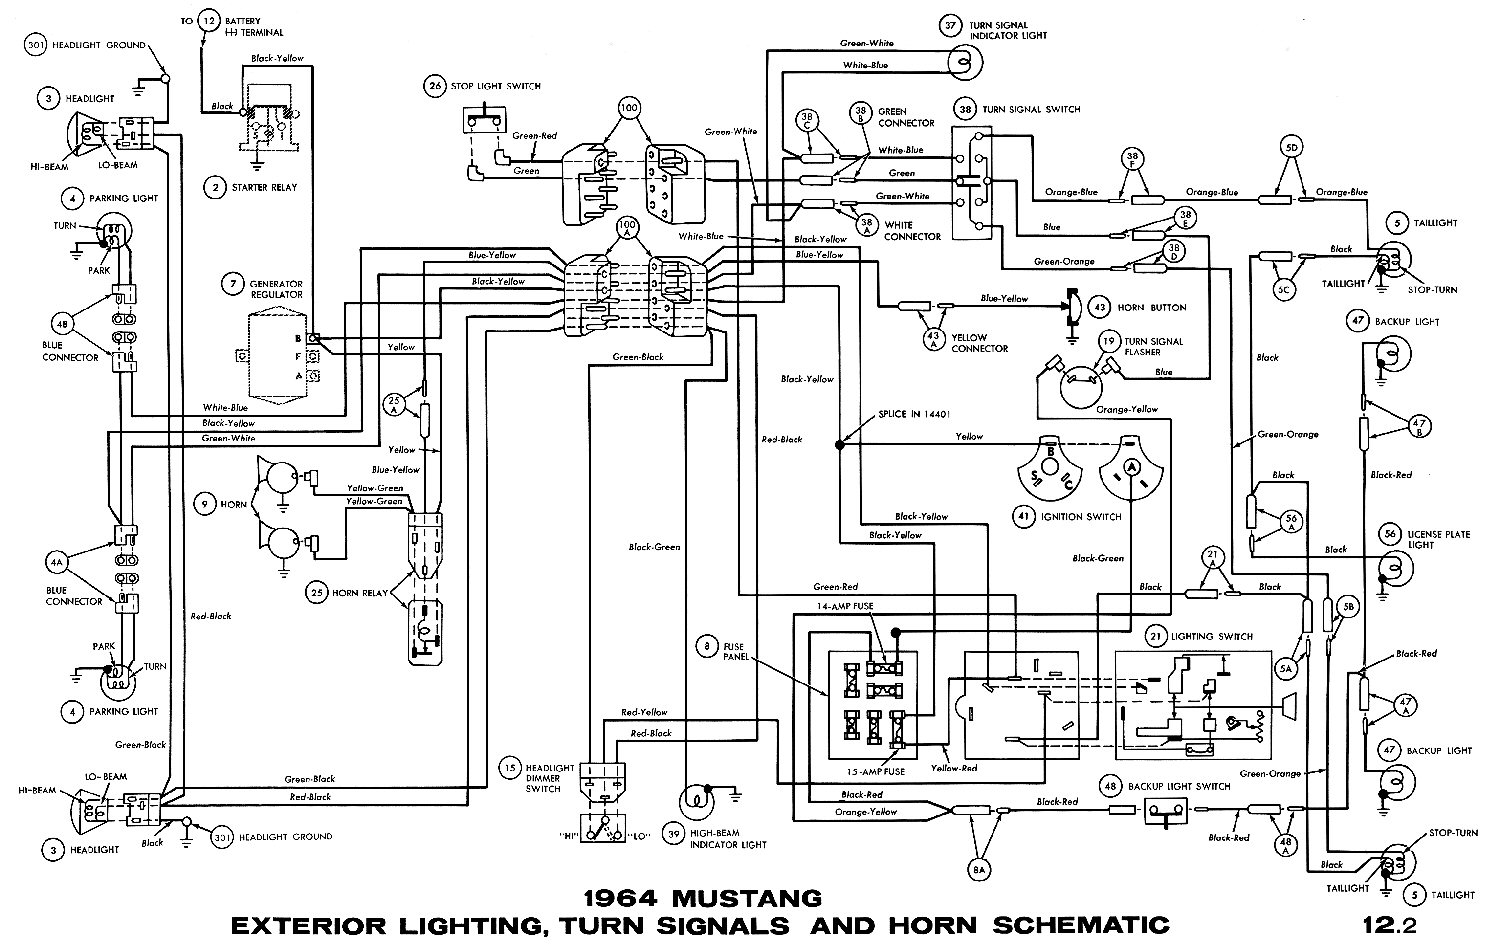 Signal Horn Schematic Reinvent Your Wiring Diagram 1964 Flh Mustang Diagrams Average Joe Restoration Rh Averagejoerestoration Com Horns Drawing